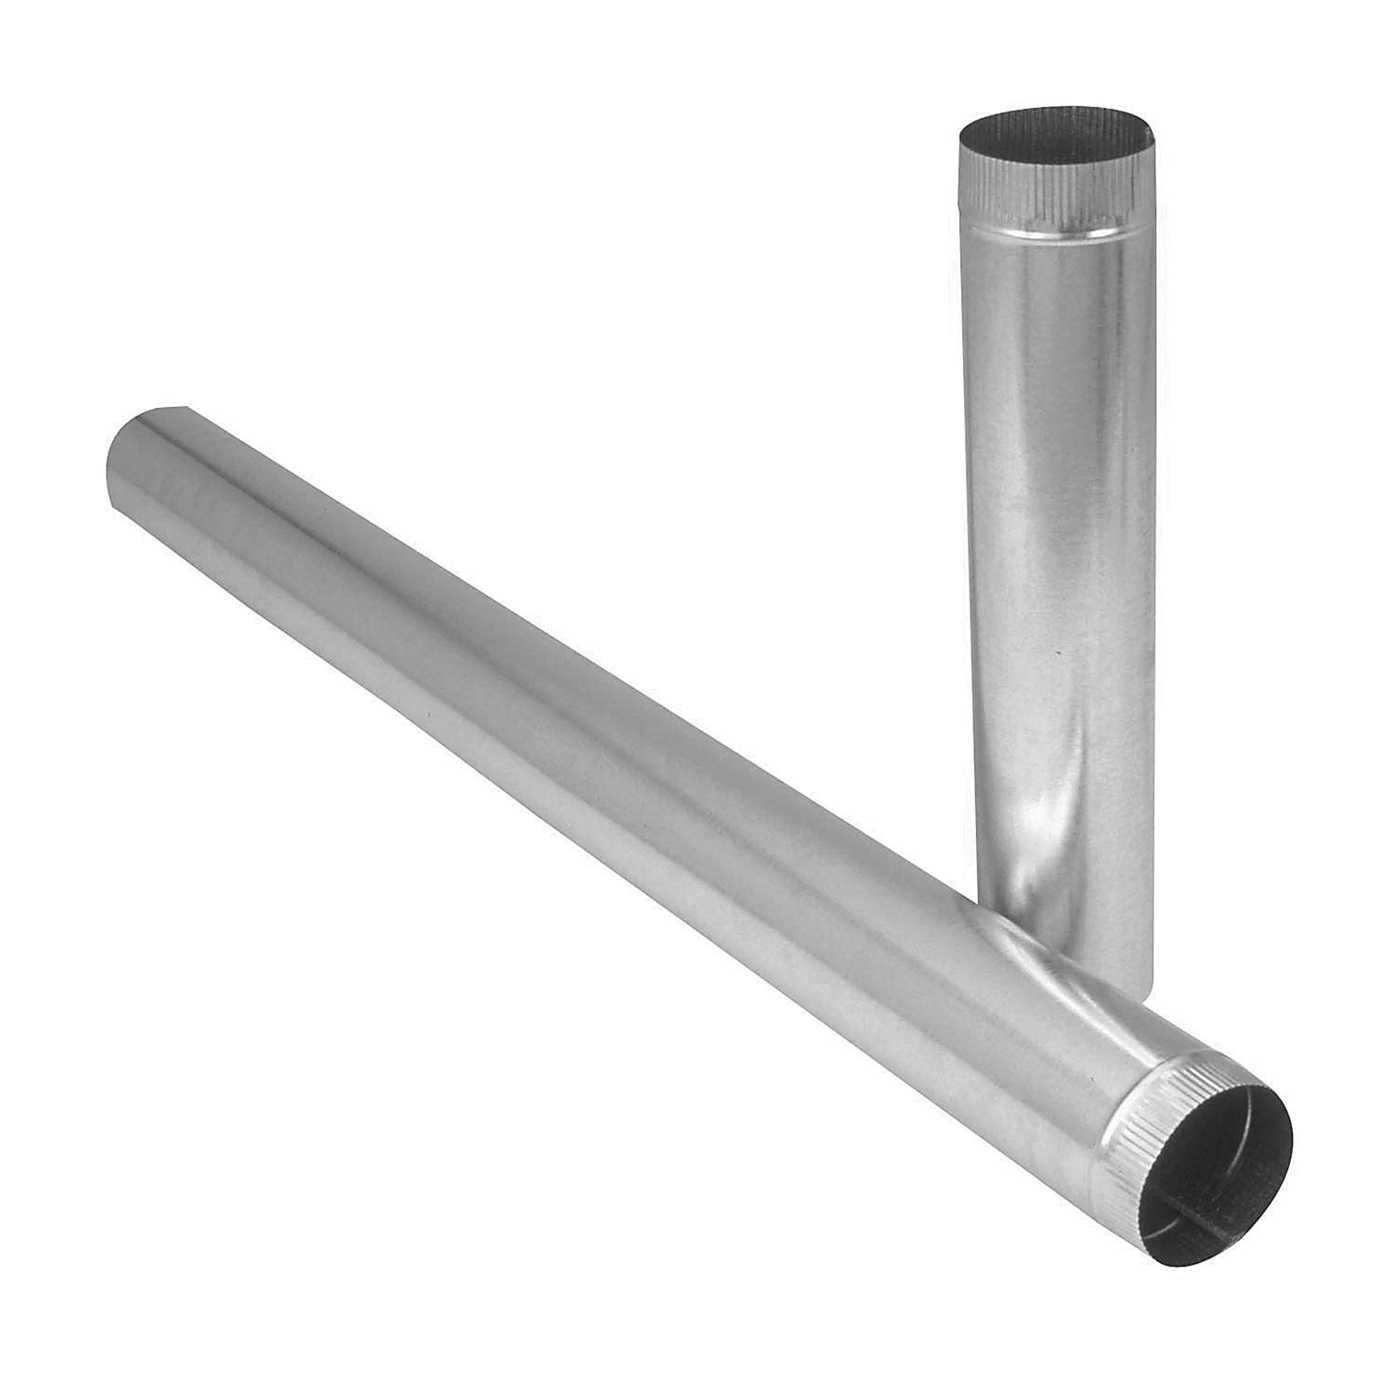 Picture of Imperial GV0379 Duct Pipe, 6 in Dia, 24 in L, 24 Gauge, Galvanized Steel, Galvanized